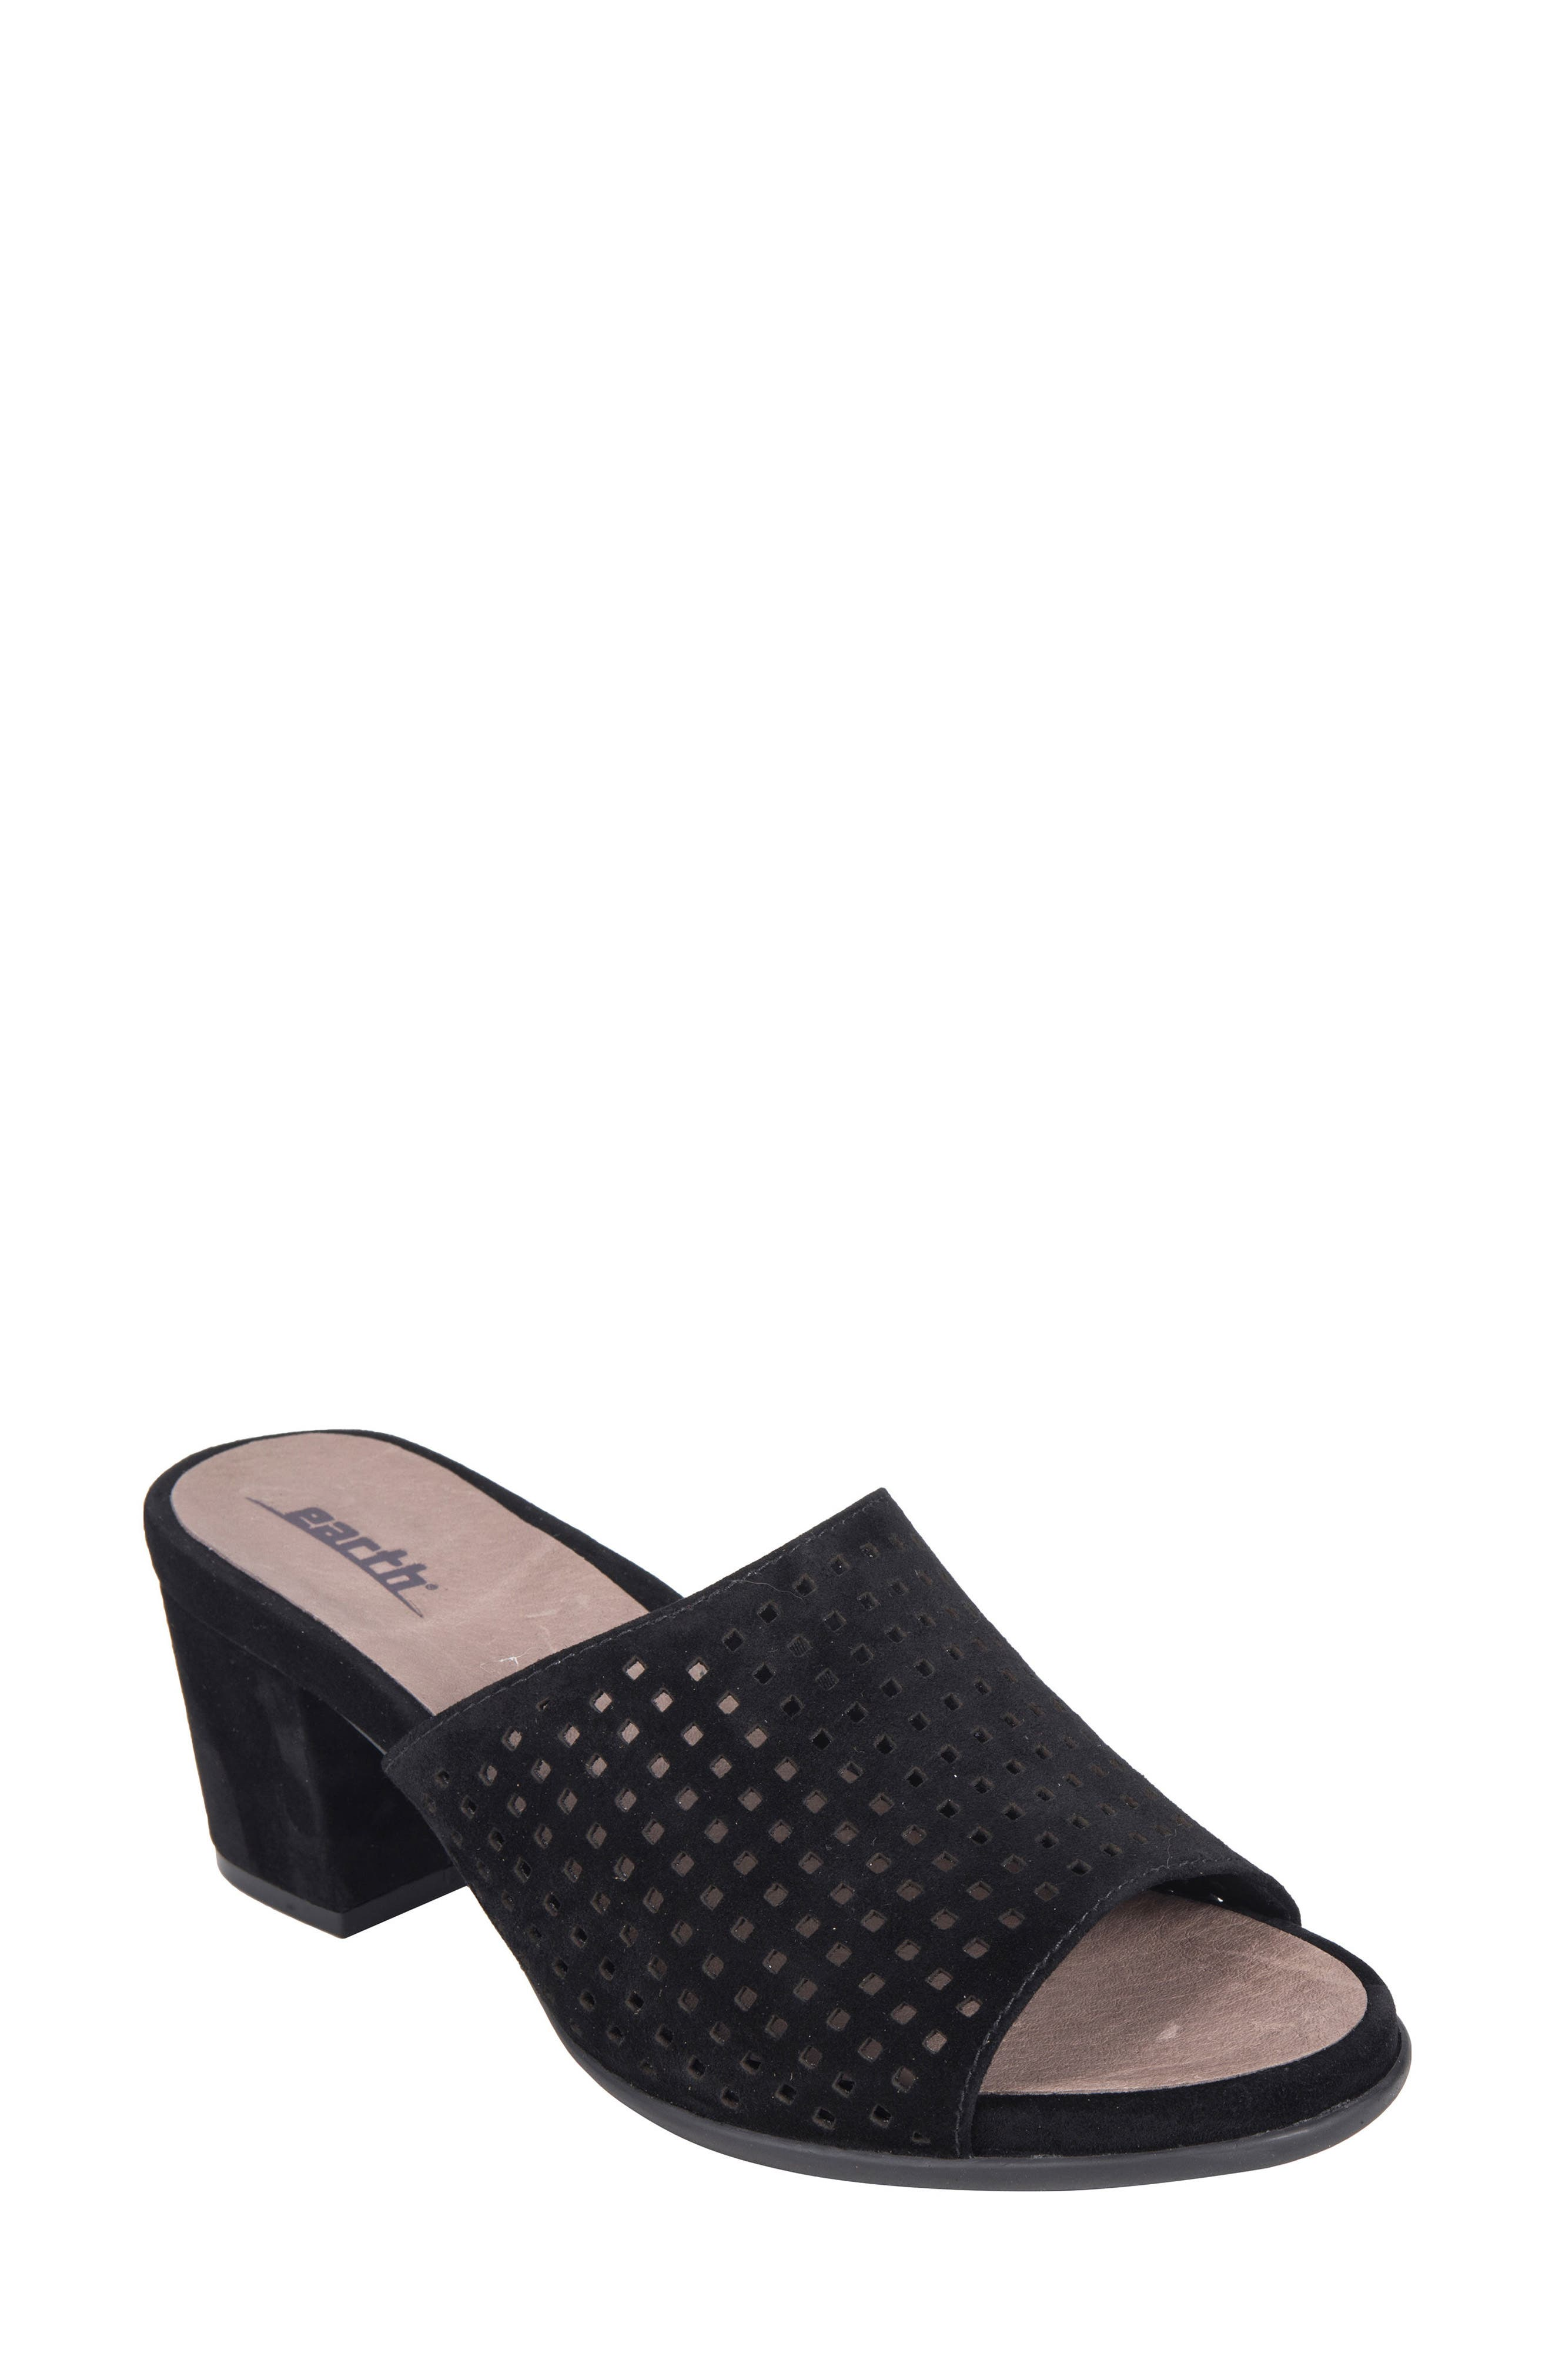 Ibiza Perforated Sandal,                             Main thumbnail 1, color,                             BLACK SUEDE